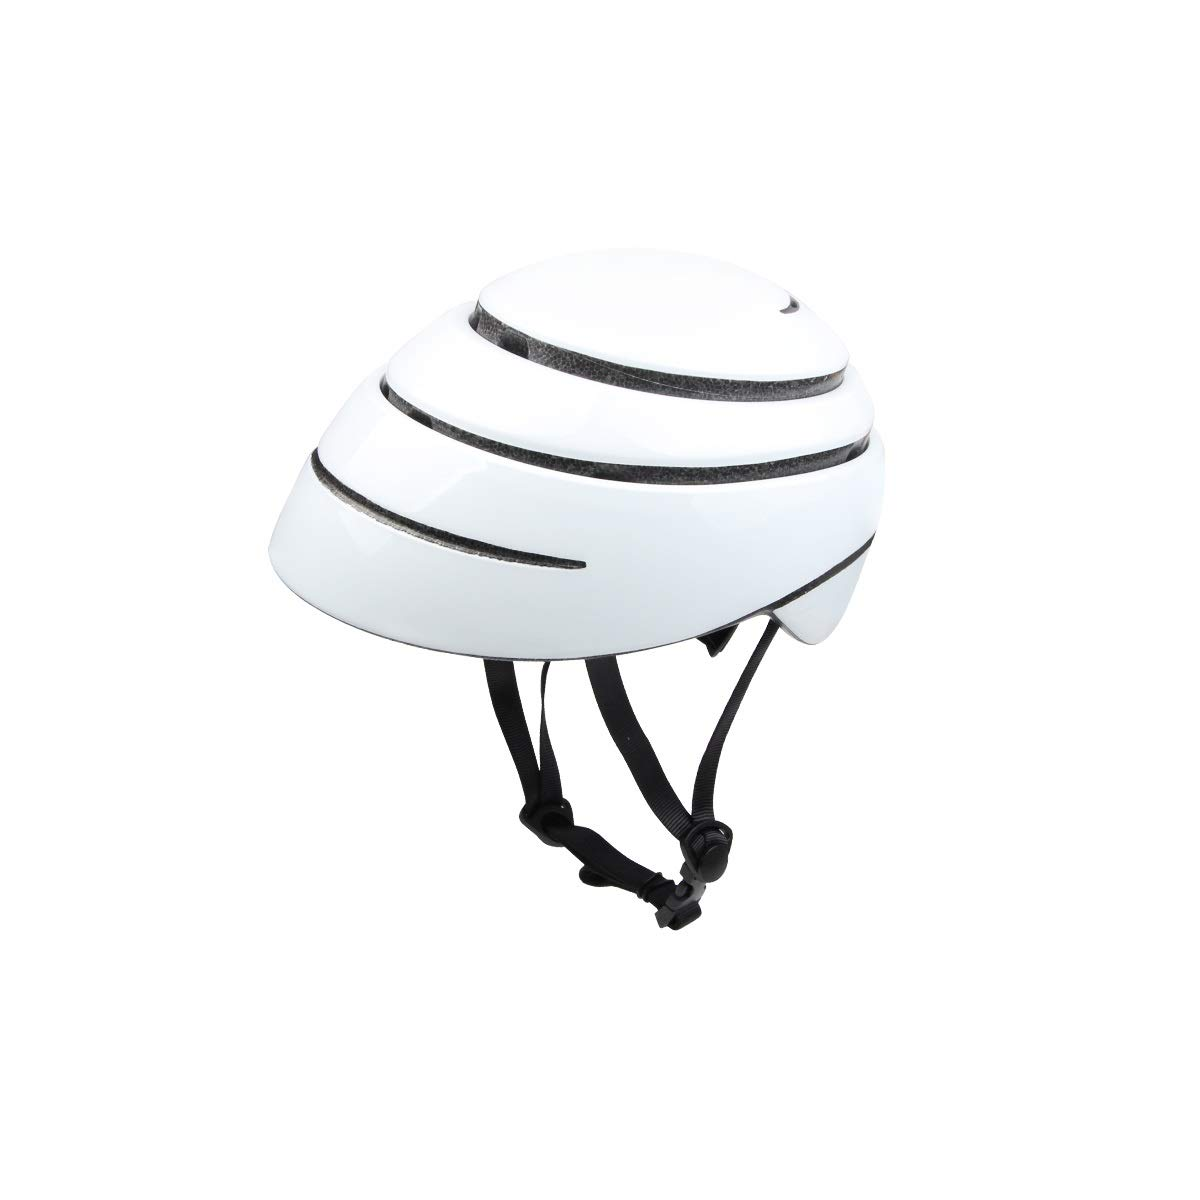 Muziwenju Multi-Functional Bicycle Helmet, Scooter Helmet with Reinforced Skeleton in The Mold for Added Protection - Comfortable, Lightweight, Breathable, (Foldable) Latest Style, Practical